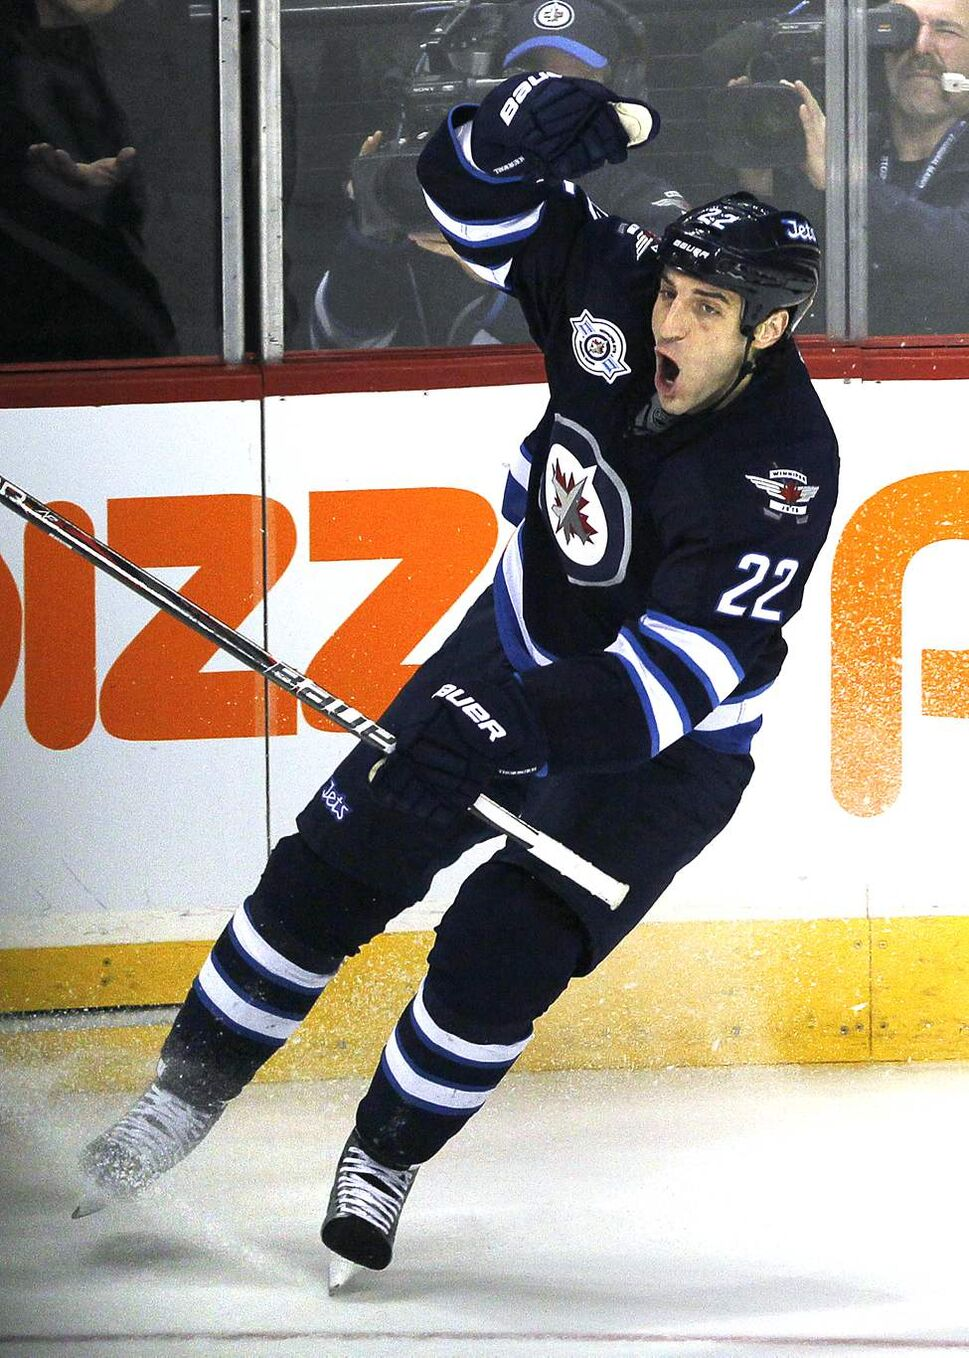 Winnipeg Jets' Chris Thorburn (22) celebrates his goal against the Buffalo Sabres during third period NHL action in Winnipeg on March 5, 2012. (John Woods / The Winnipeg Free Press)